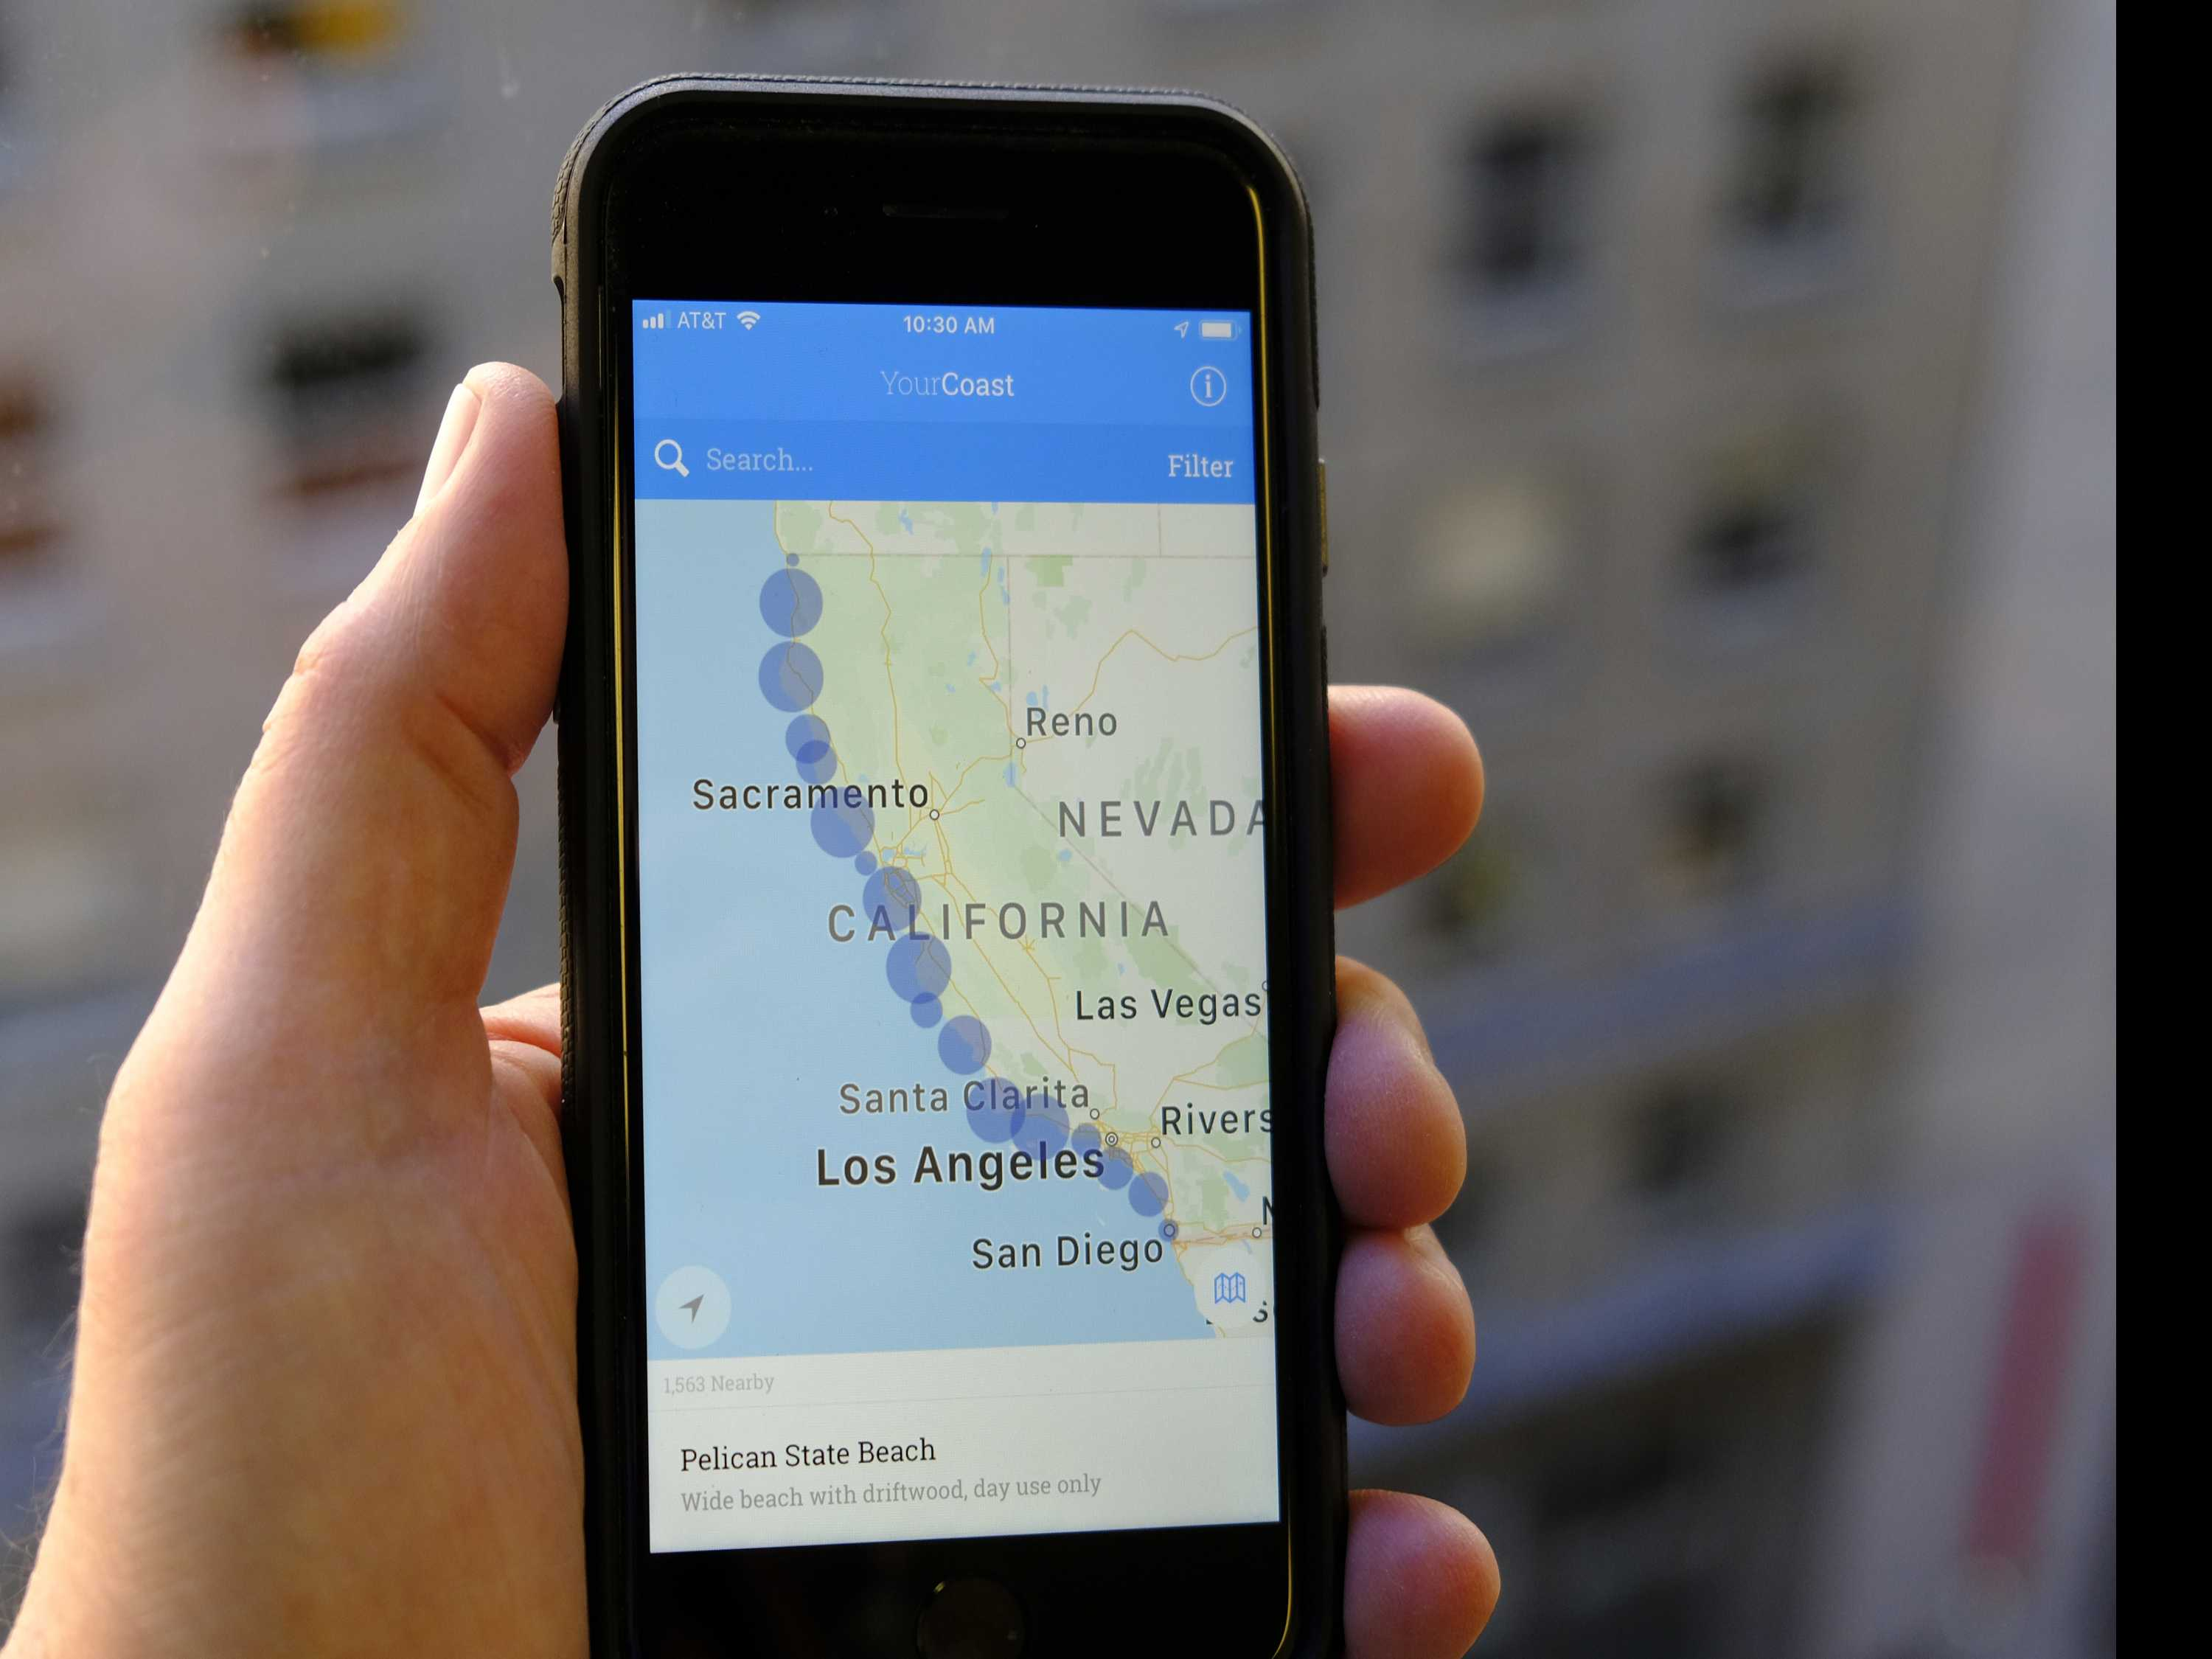 Billionaire Builds Beach Access App After Violating Rules